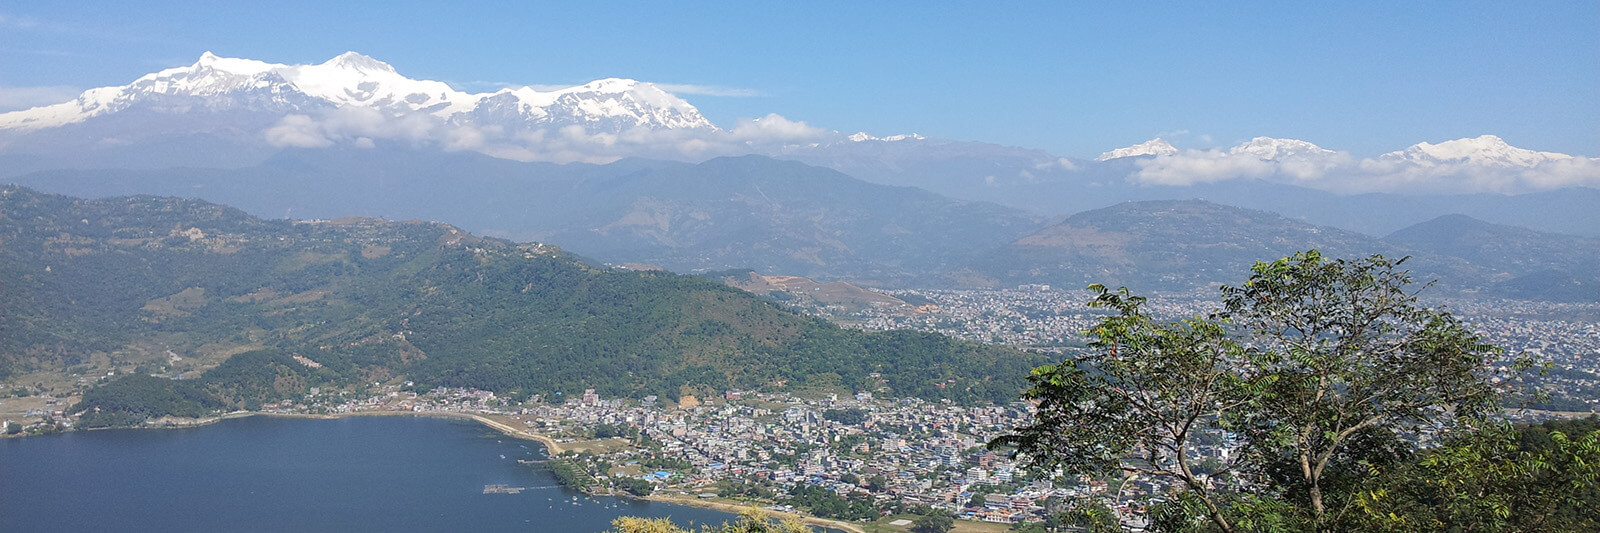 Pokhara, Nepal with the Annapurna Mountain Range in the background